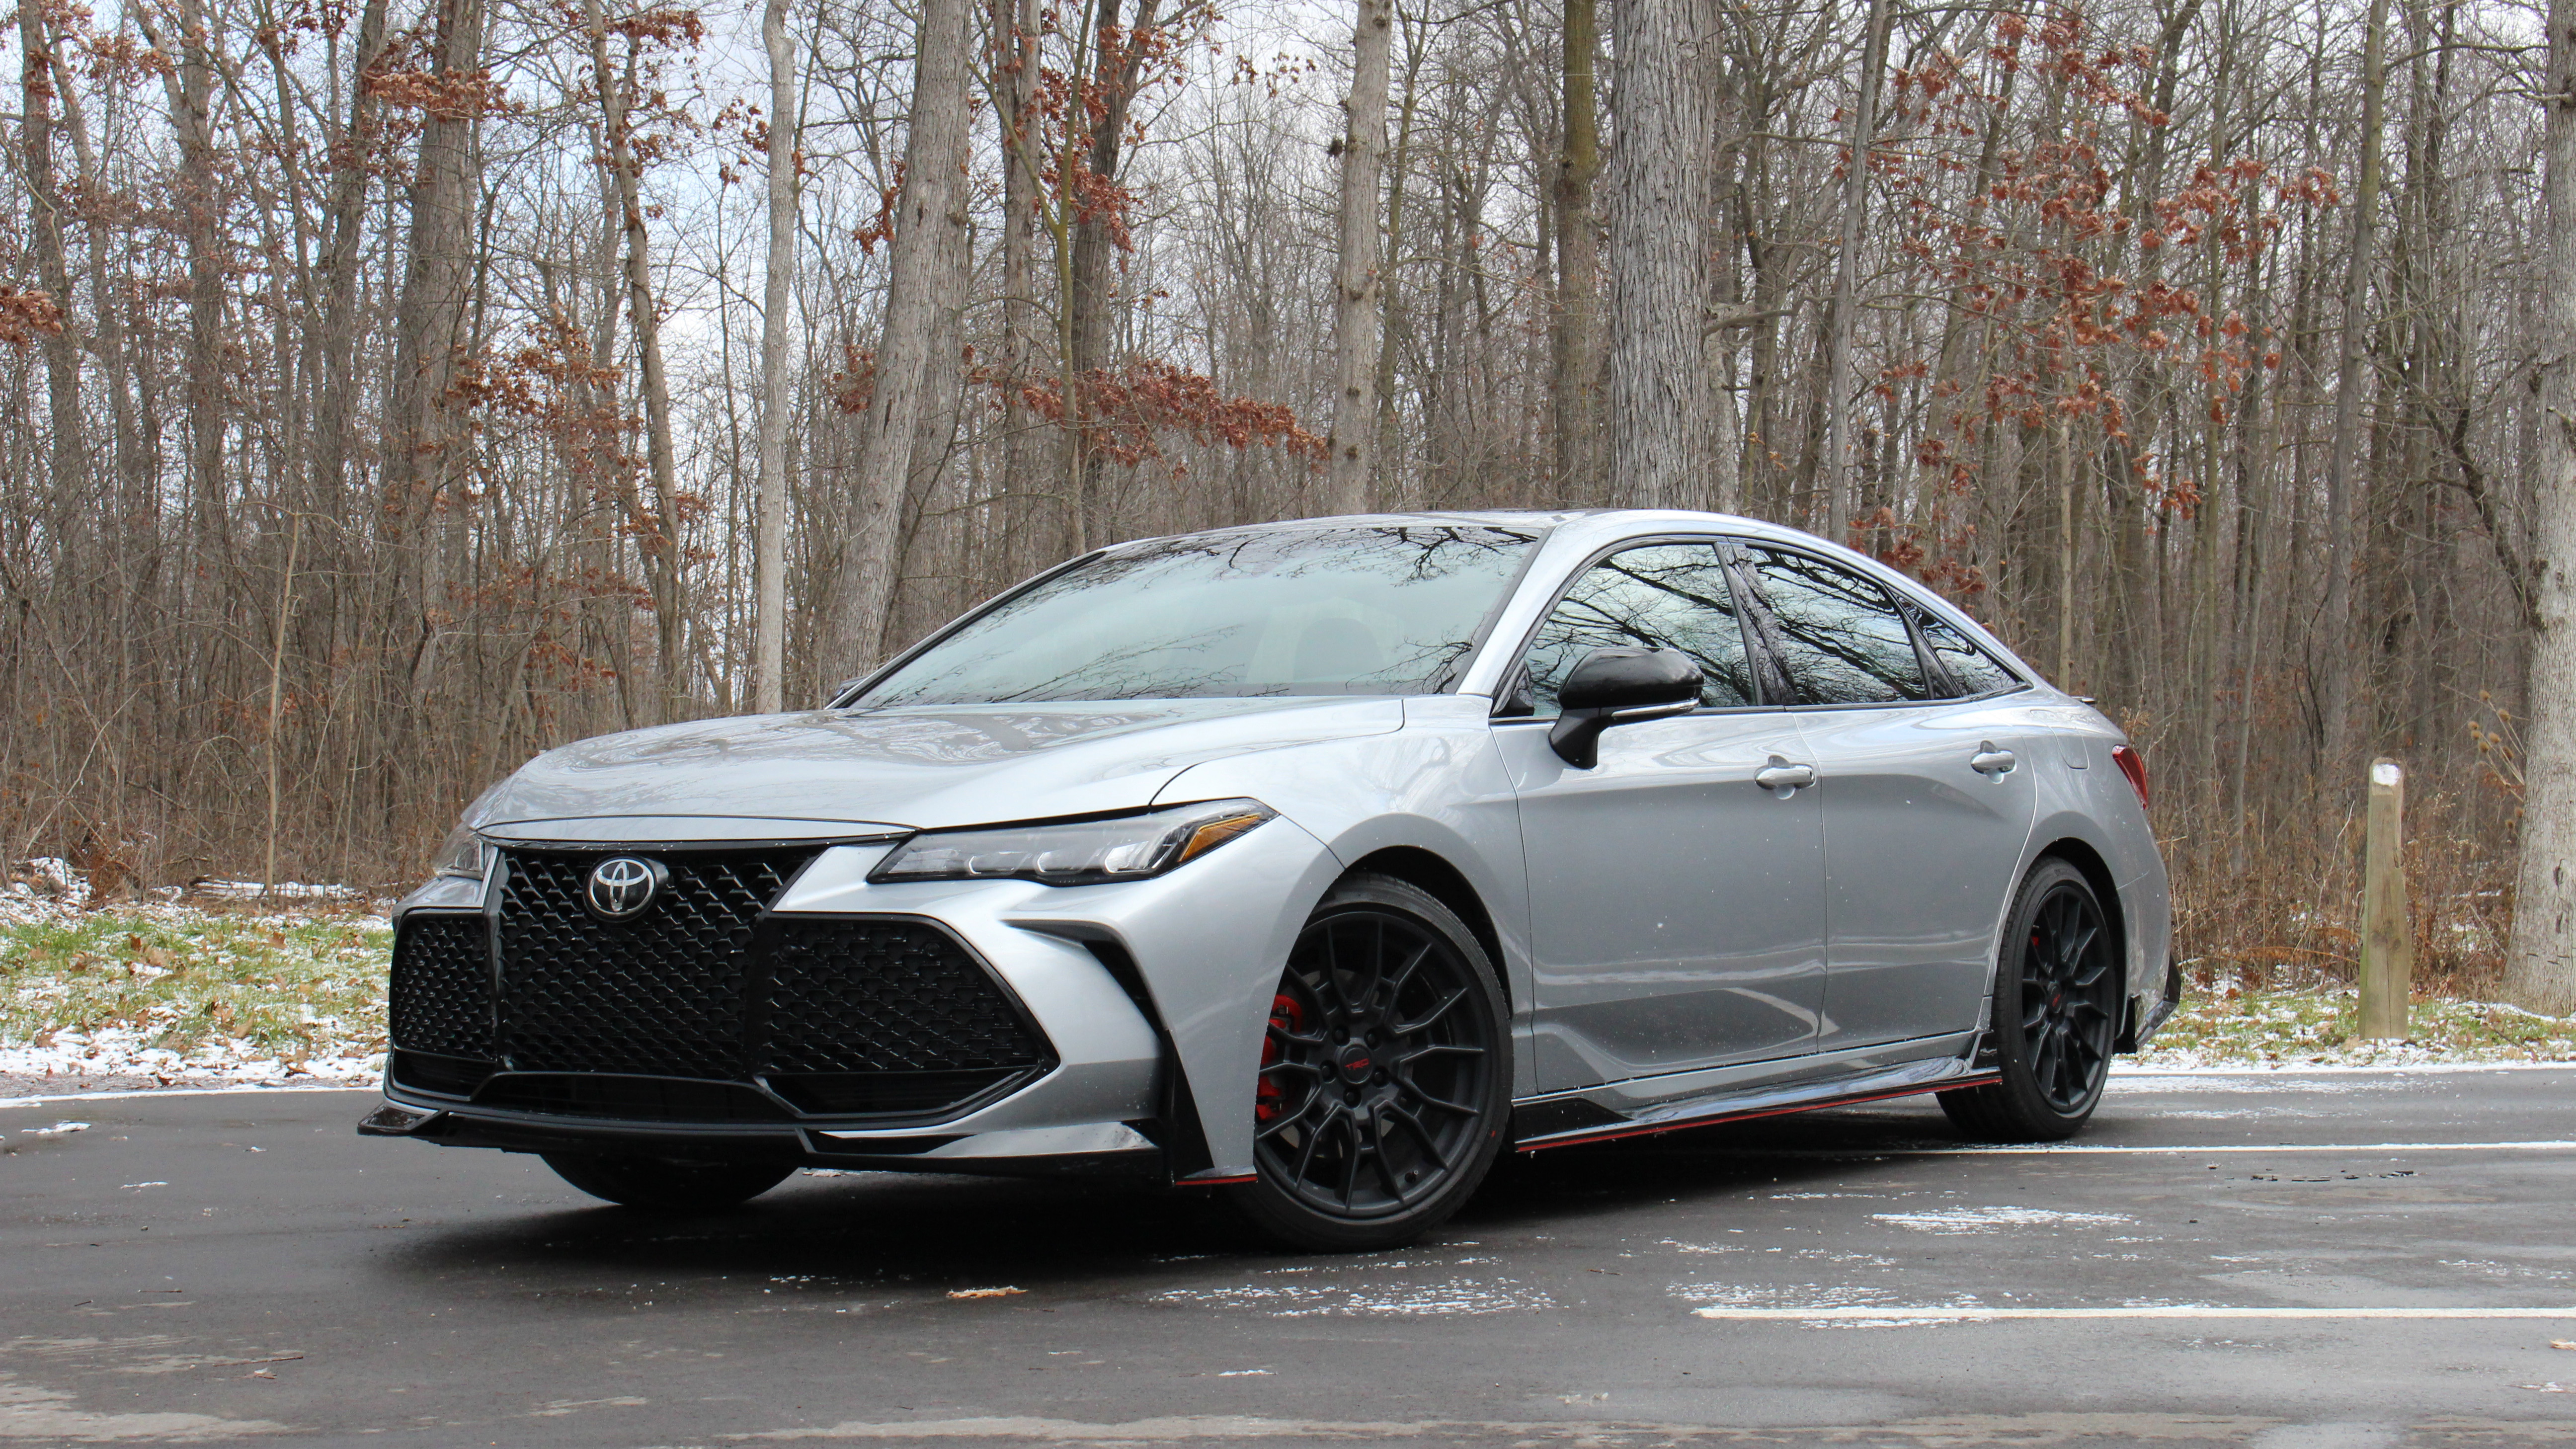 Toyota Certified Pre-Owned >> 2020 Toyota Avalon TRD Drivers' Notes | Engine, handling, features | Autoblog